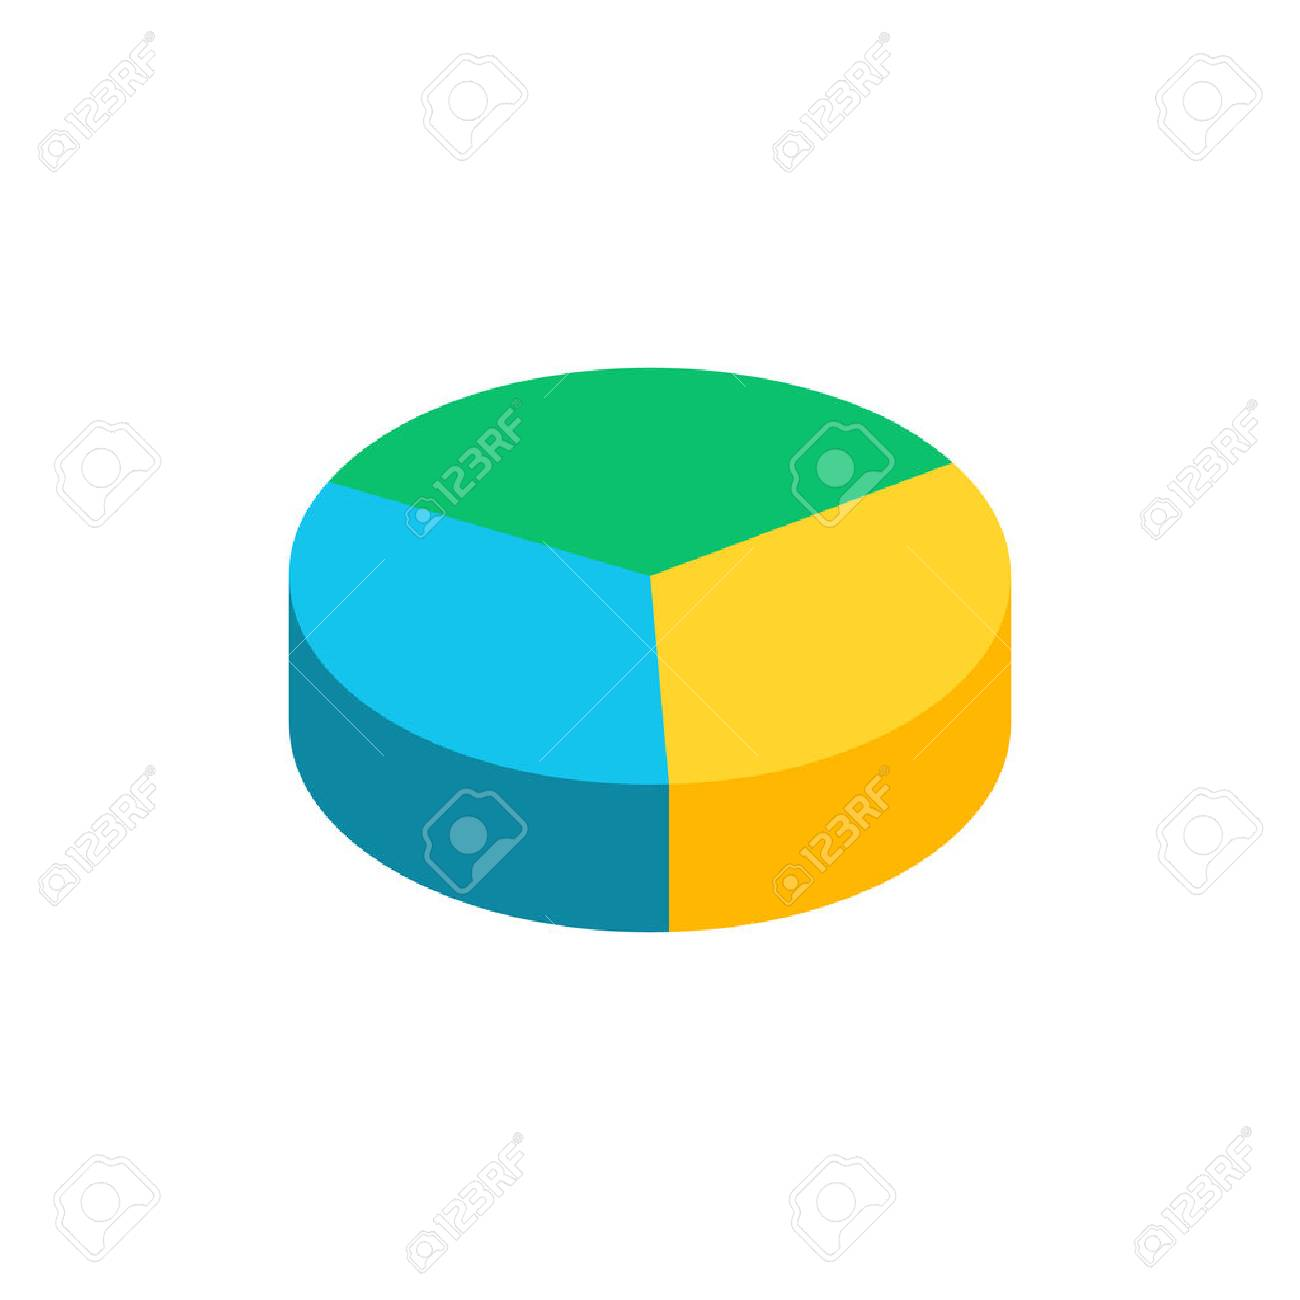 Bulk isometric pie graph  Template realistic three-dimensional